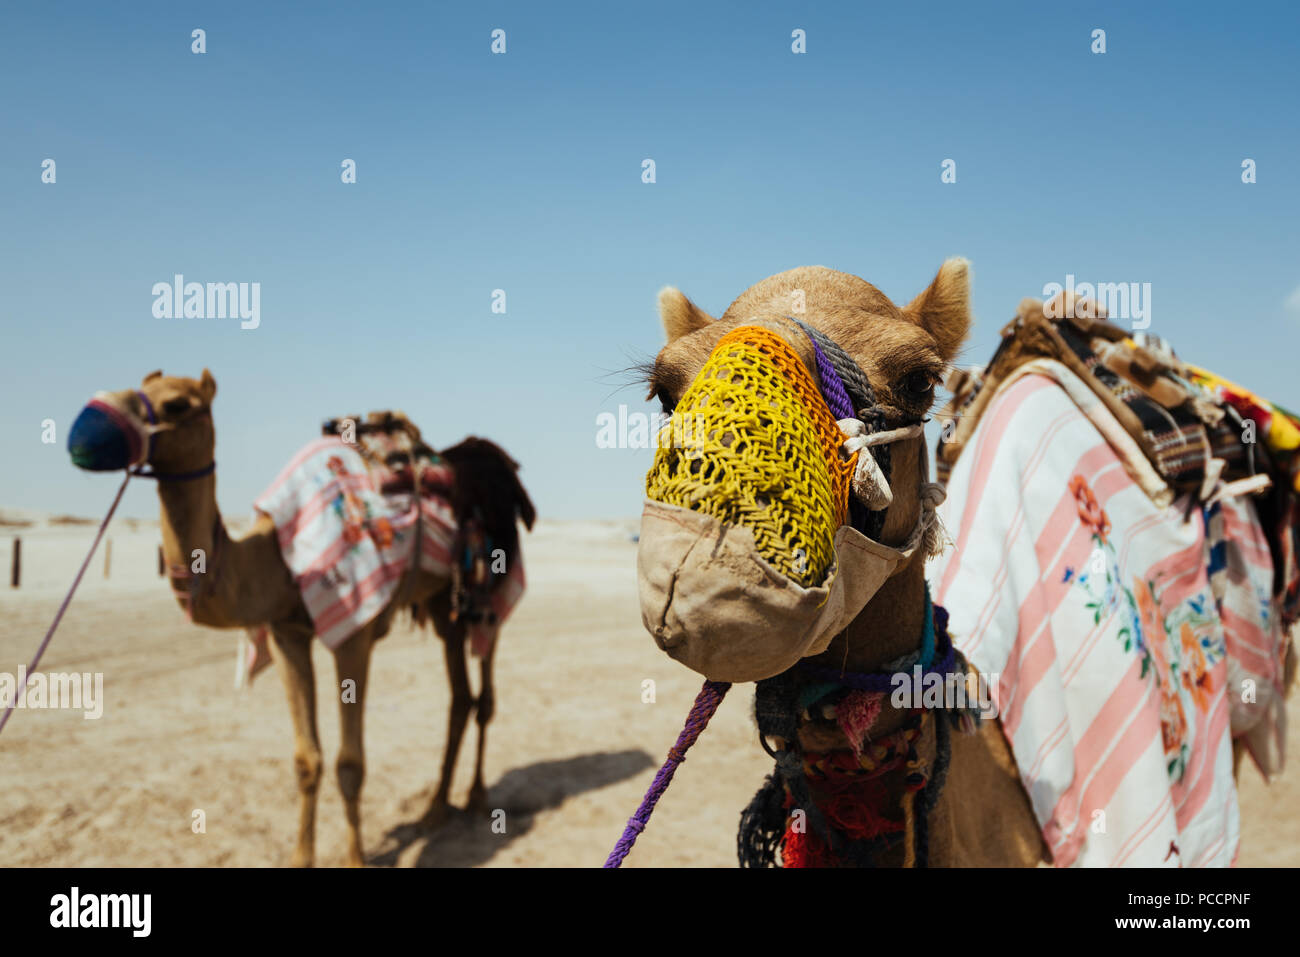 Camels, wearing knitted muzzles to prevent biting or chewing, wait on the Mesaieed desert, also known as Dukhan Heights, Al-Rayyan Municipality, Qatar Stock Photo